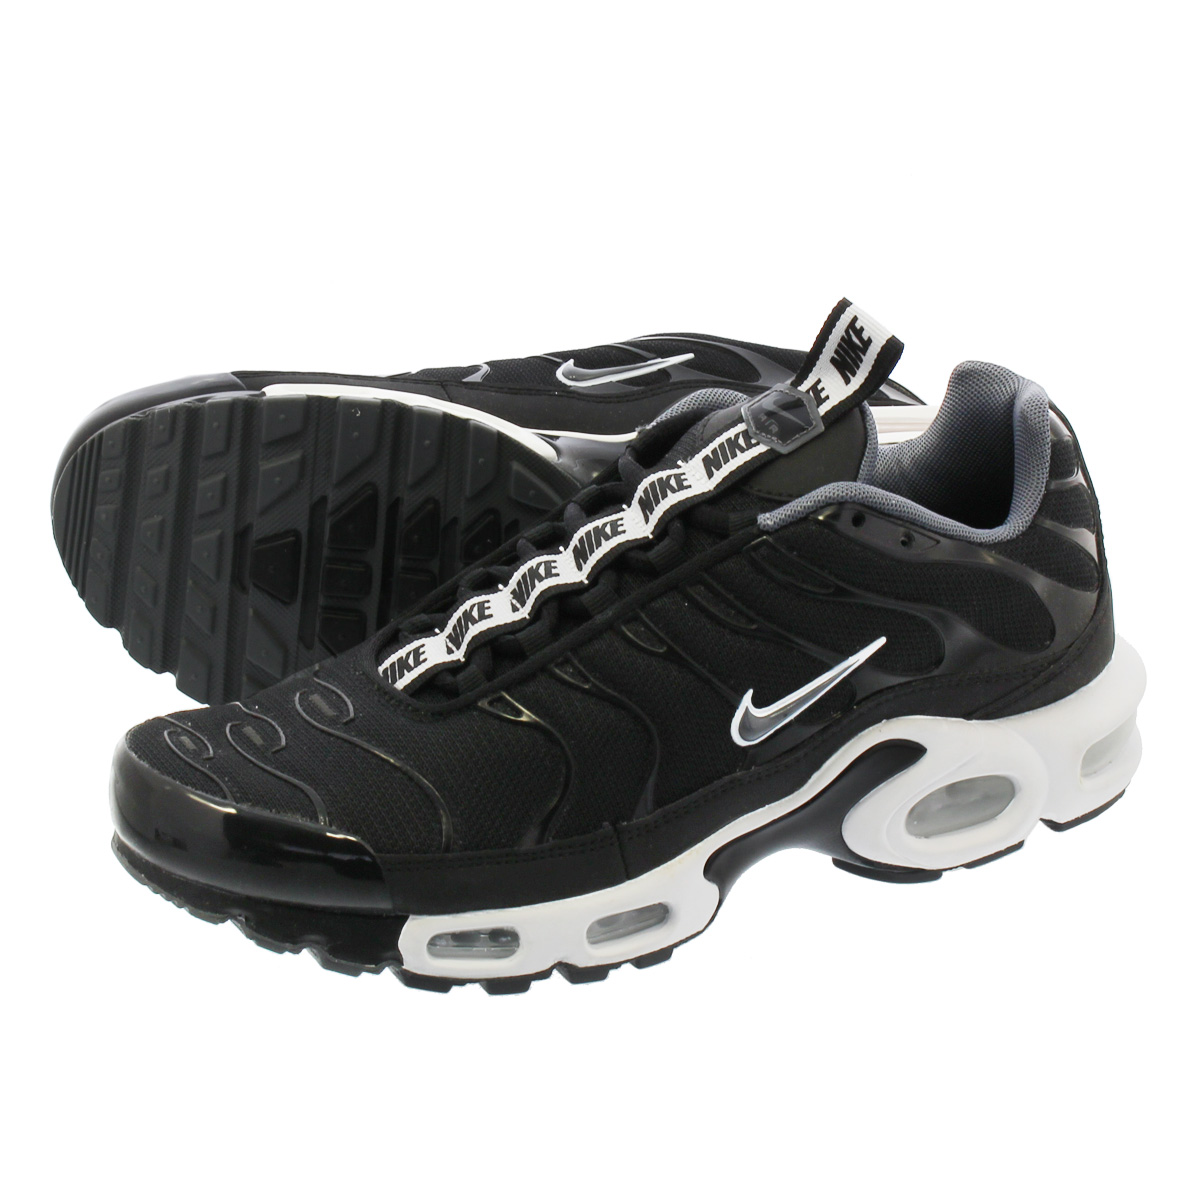 6276125e051 LOWTEX PLUS  NIKE AIR MAX PLUS TN SE Kie Ney AMAX plus TN SE BLACK ...